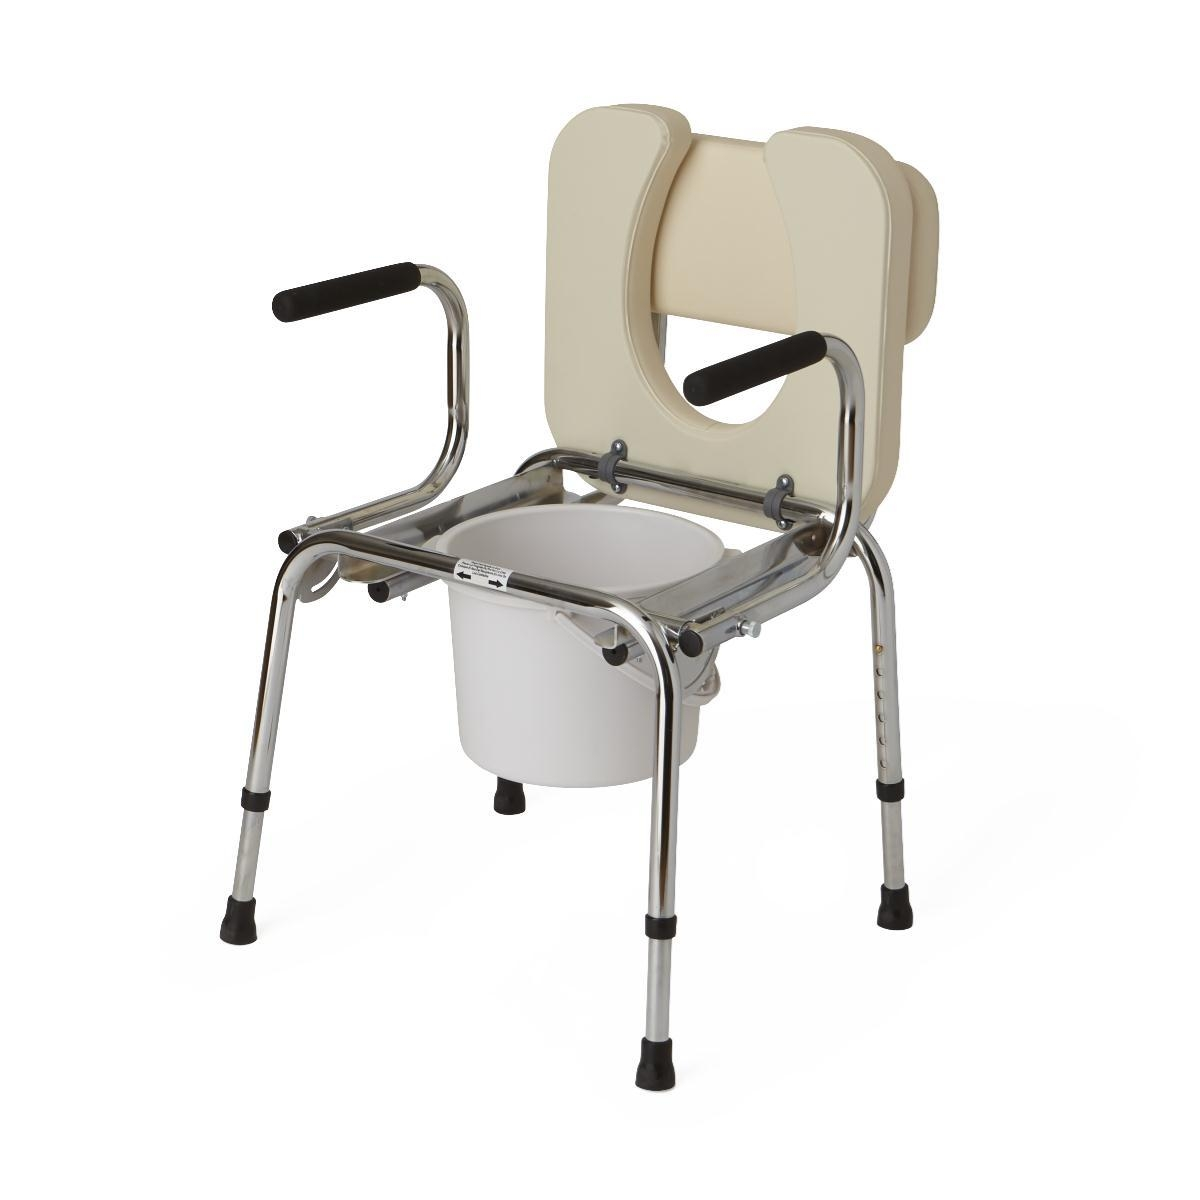 Equipment & Furnishings Bathroom Safety Commodes - G98204 - Commode Drop Arm Padded G98204